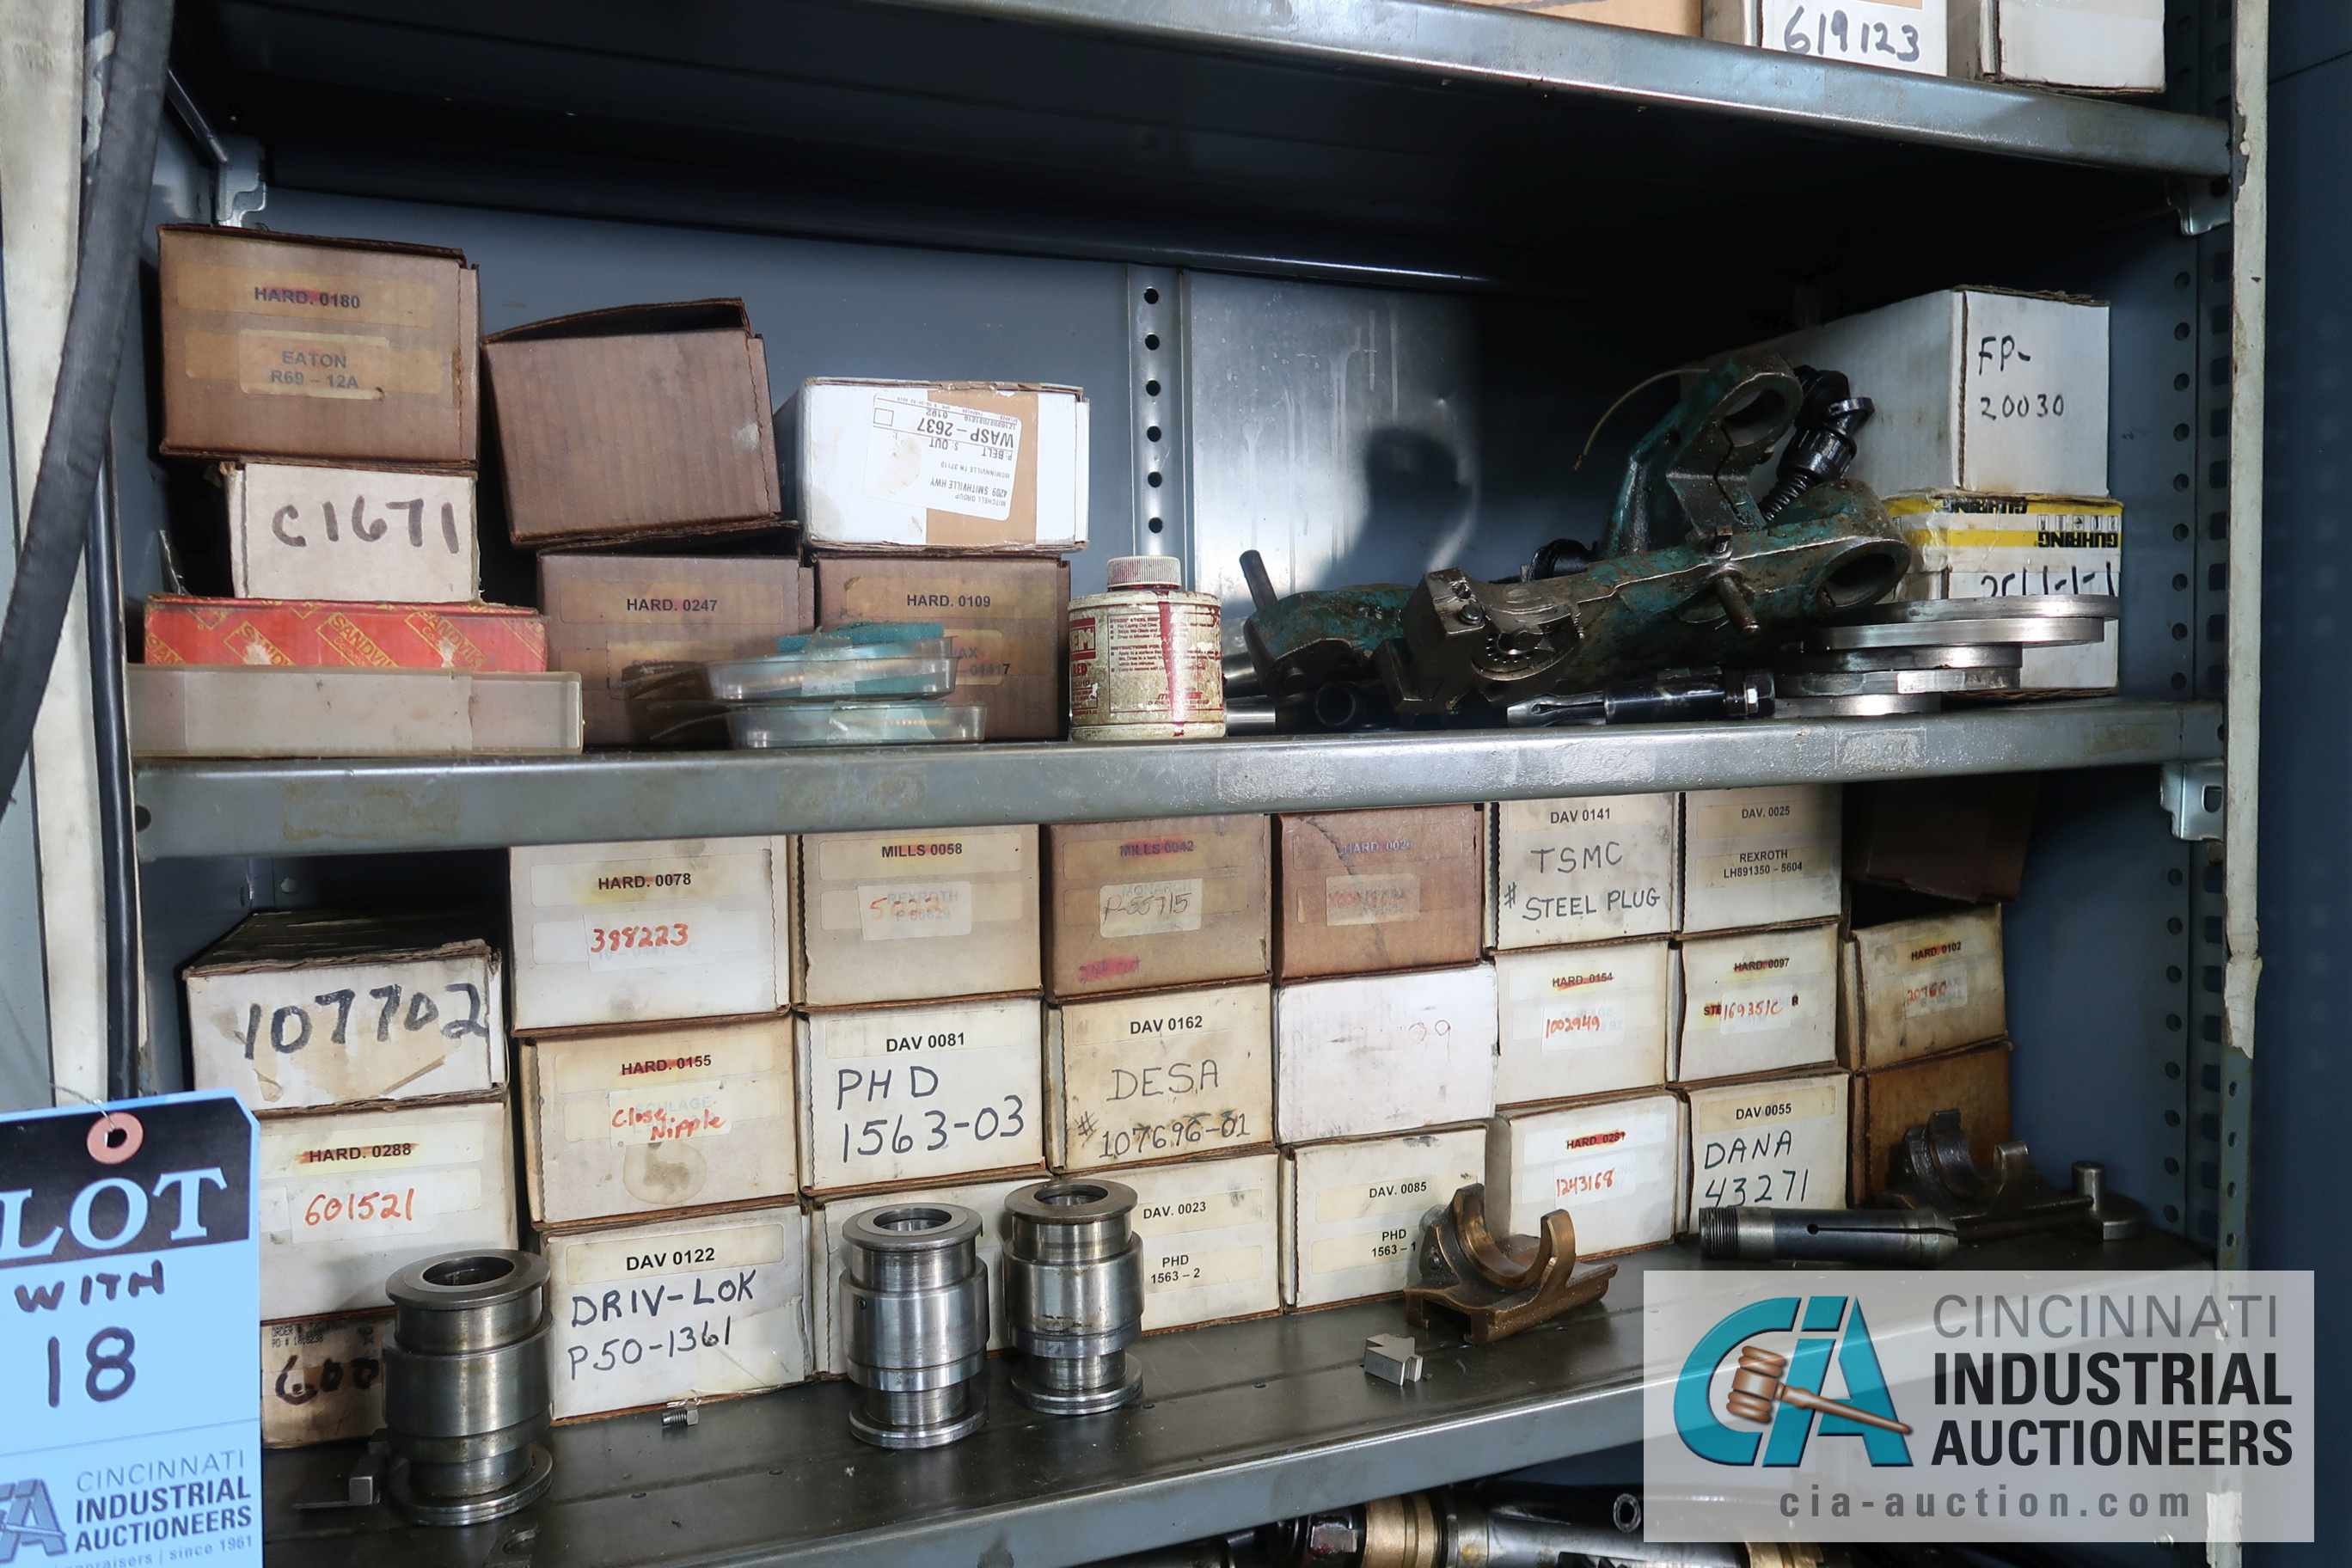 (LOT) LARGE ASSORTMENT MISCELLANEOUS DAVENPORT TOOLING, ATTACHMENTS, GEARS, CAMS AND OTHER RELATED - Image 13 of 21